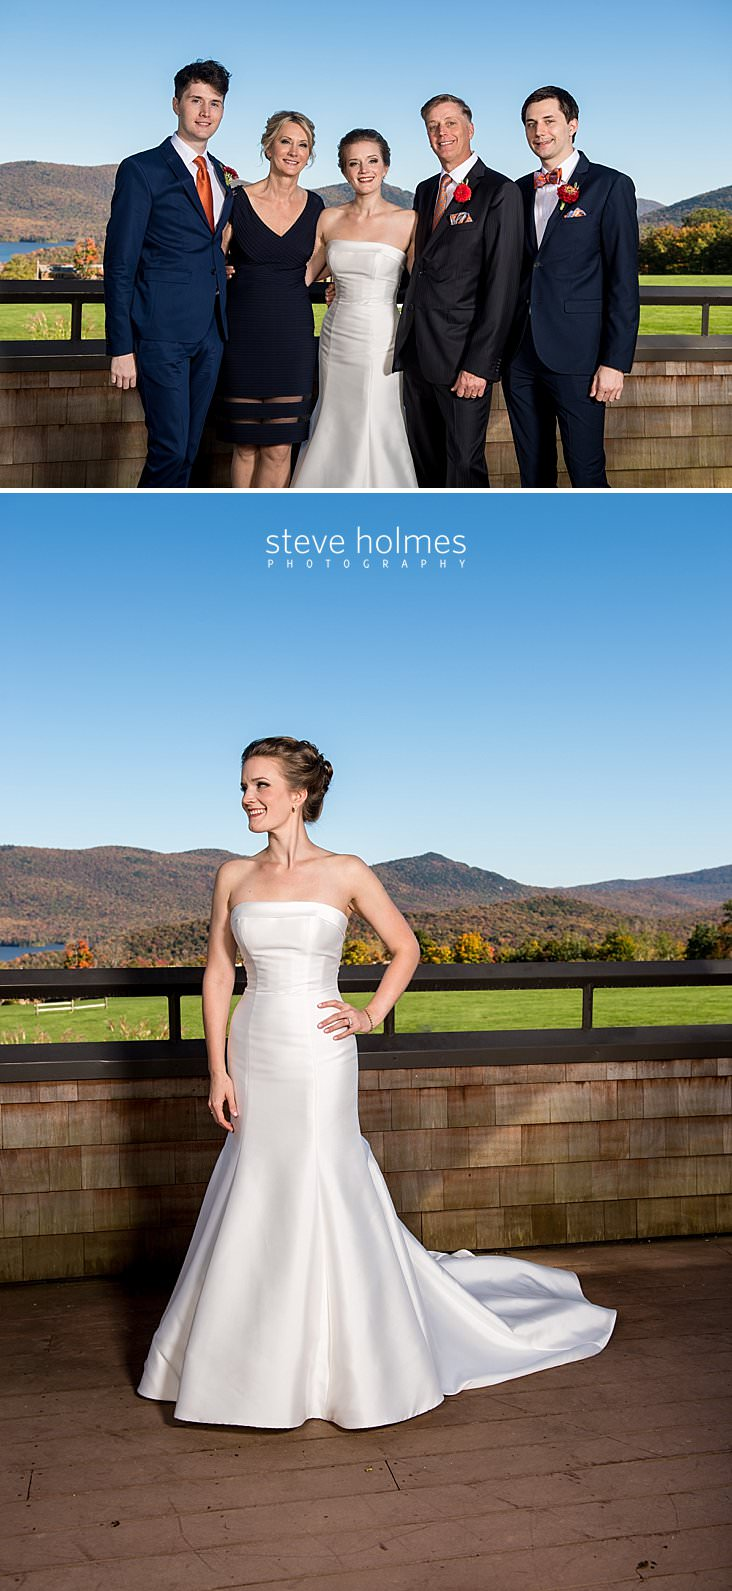 12_Bride poses with her family on balcony overlooking fall mountains.jpg